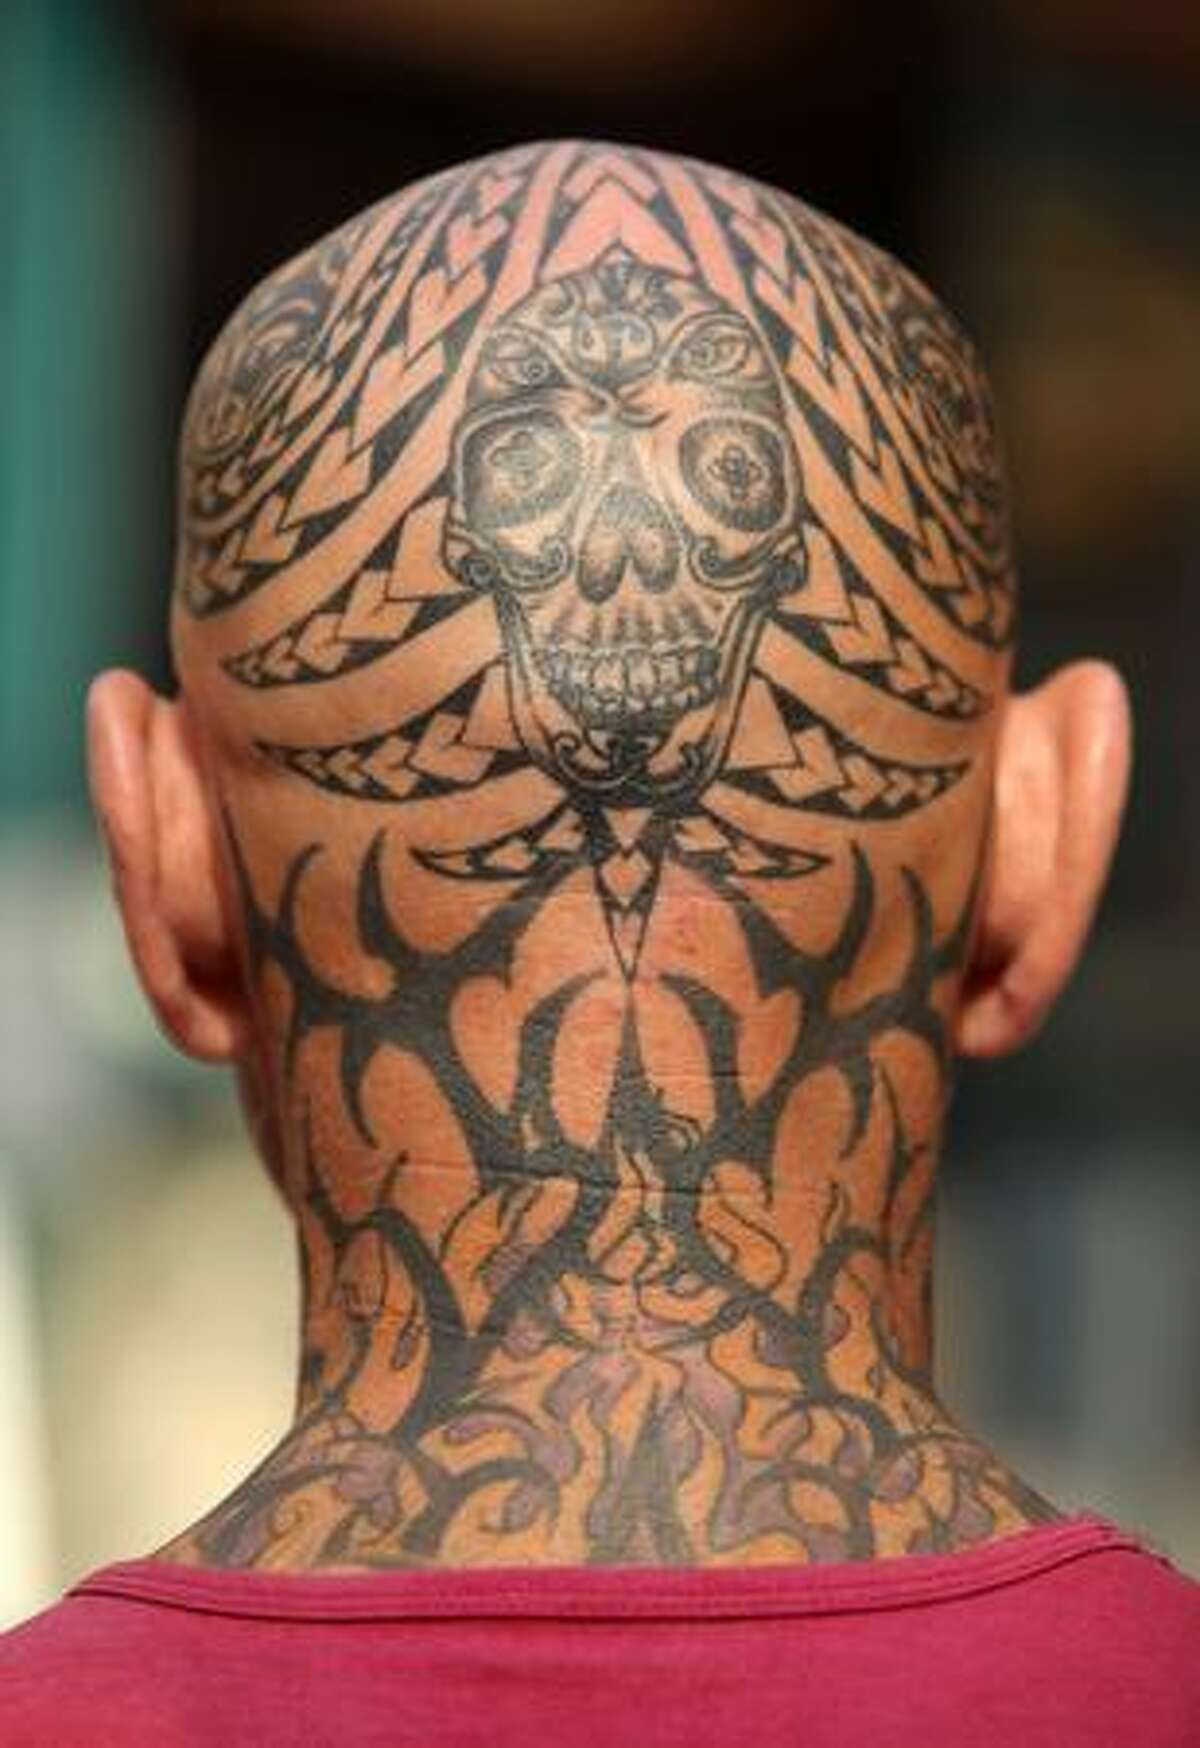 A man shows off his tattooed head on the opening day of the fifth London Tattoo Convention in London, England.